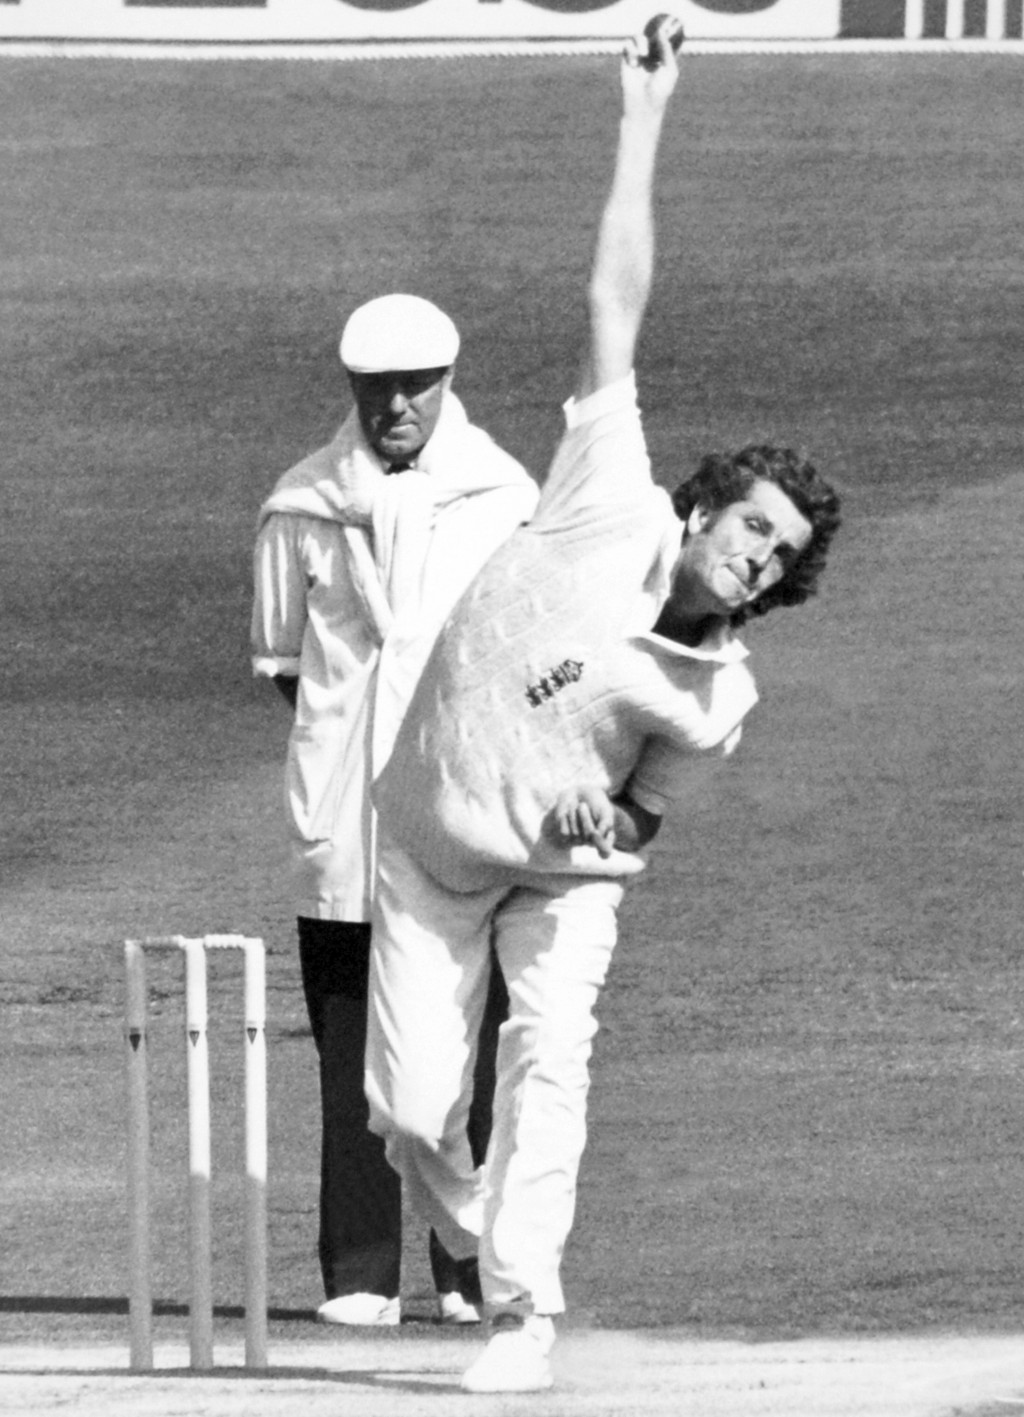 FILE - In this file photo dated June 3, 1983, showing England and Warwickshire fast bowler Bob Willis, watched by umpire Bill Alley. Former England ca...